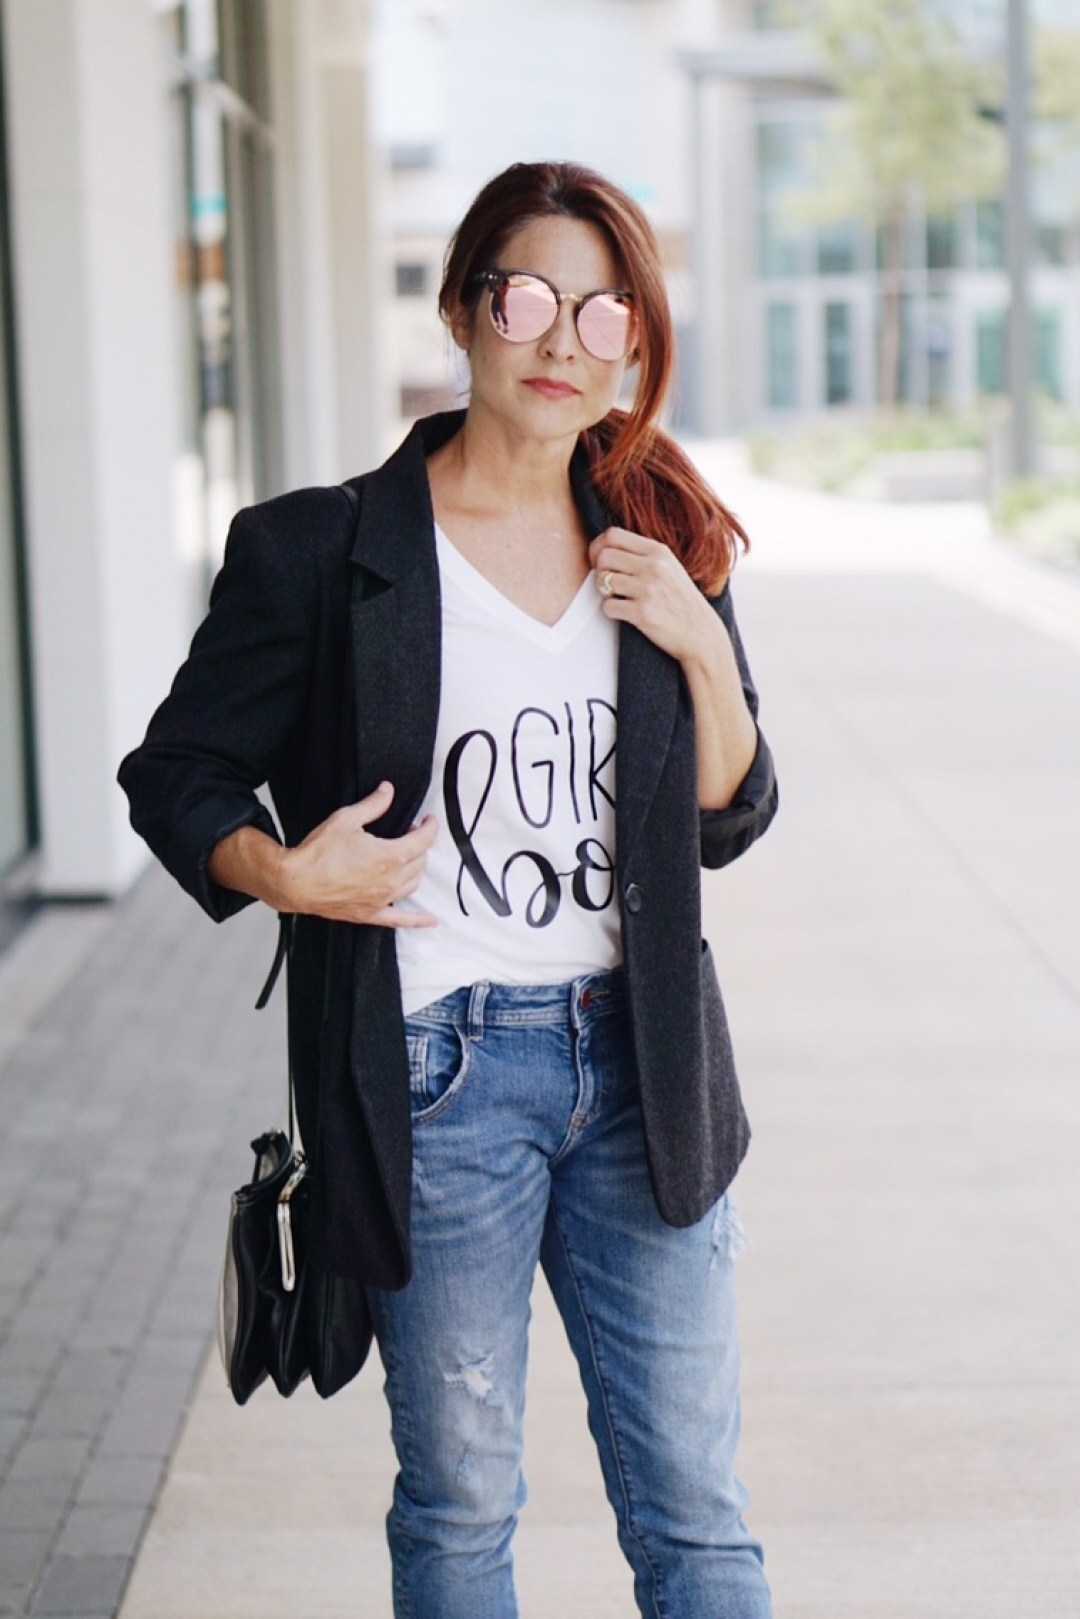 blazer and jeans ideas, girl power shirt, boyfriend jeans, men inspired blazer, minimalist